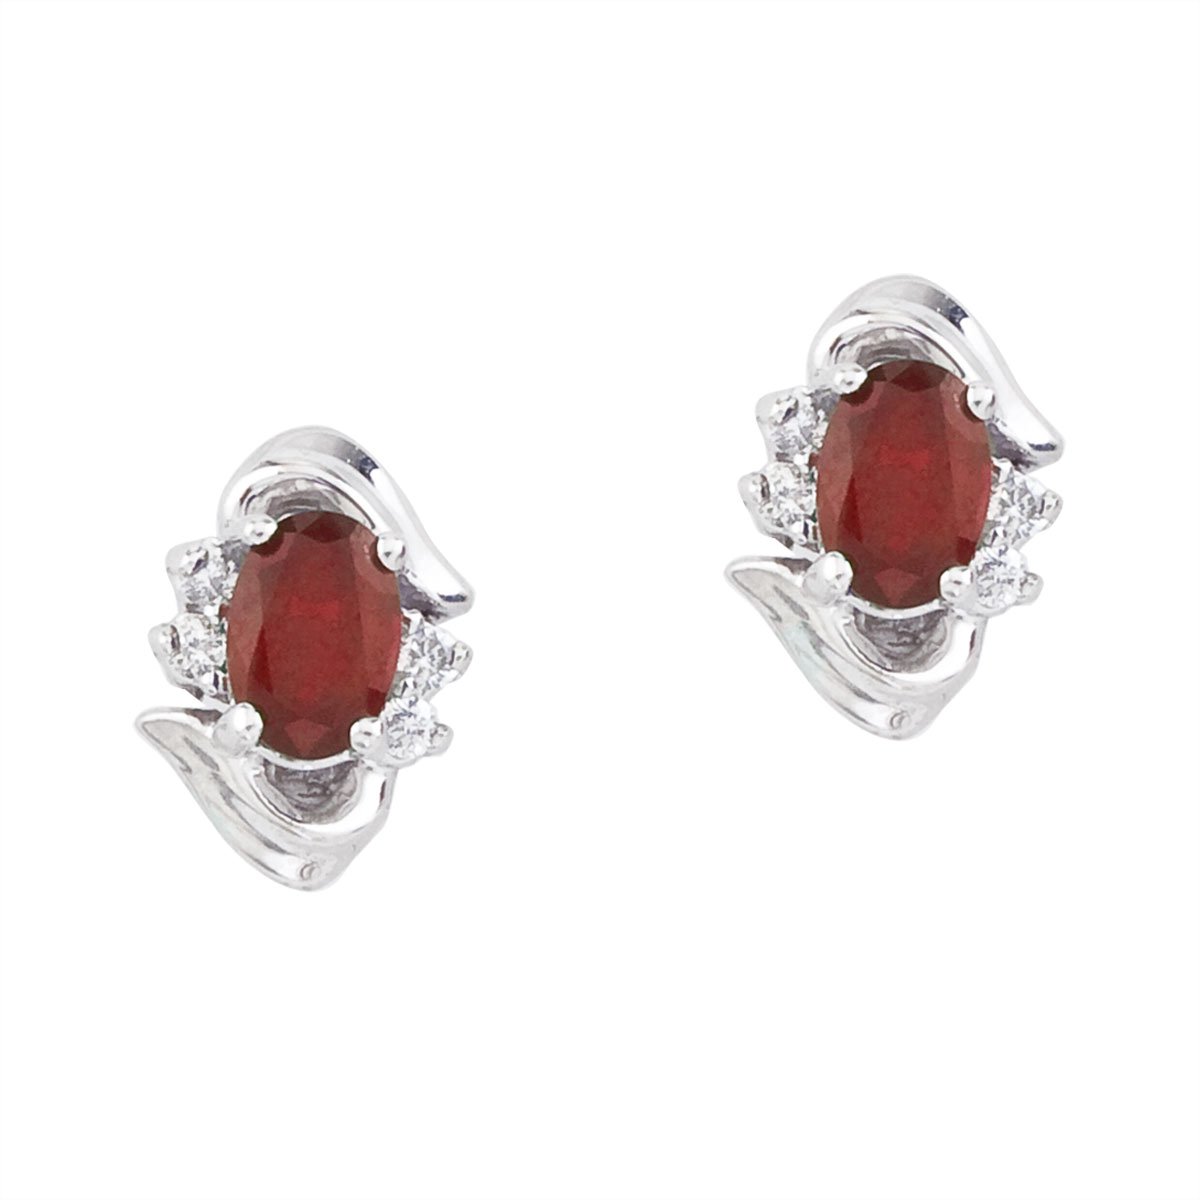 Stunning 14k white gold and ruby earrings. Featuring natural 6x4 mm oval rubies and .11 total car...